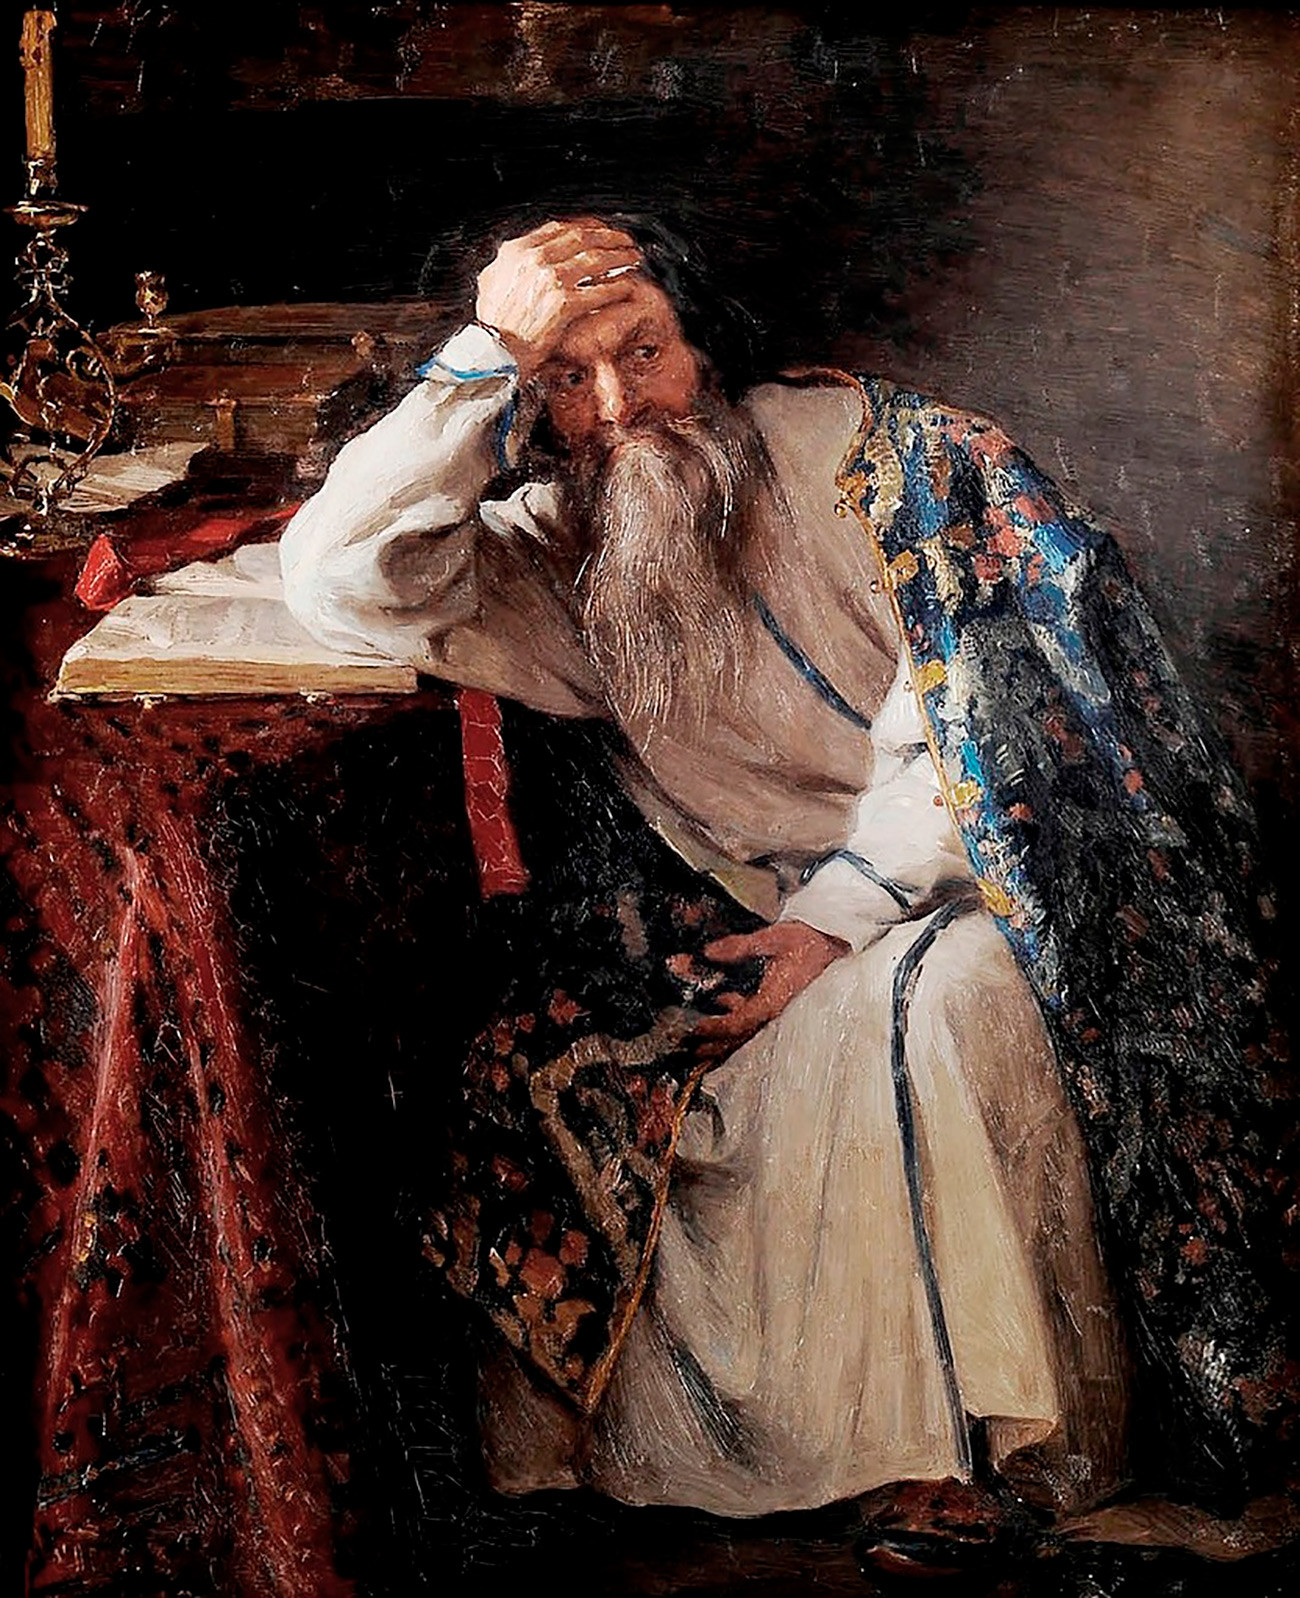 Ivan the Terrible by Klavdiy Lebedev, 1916